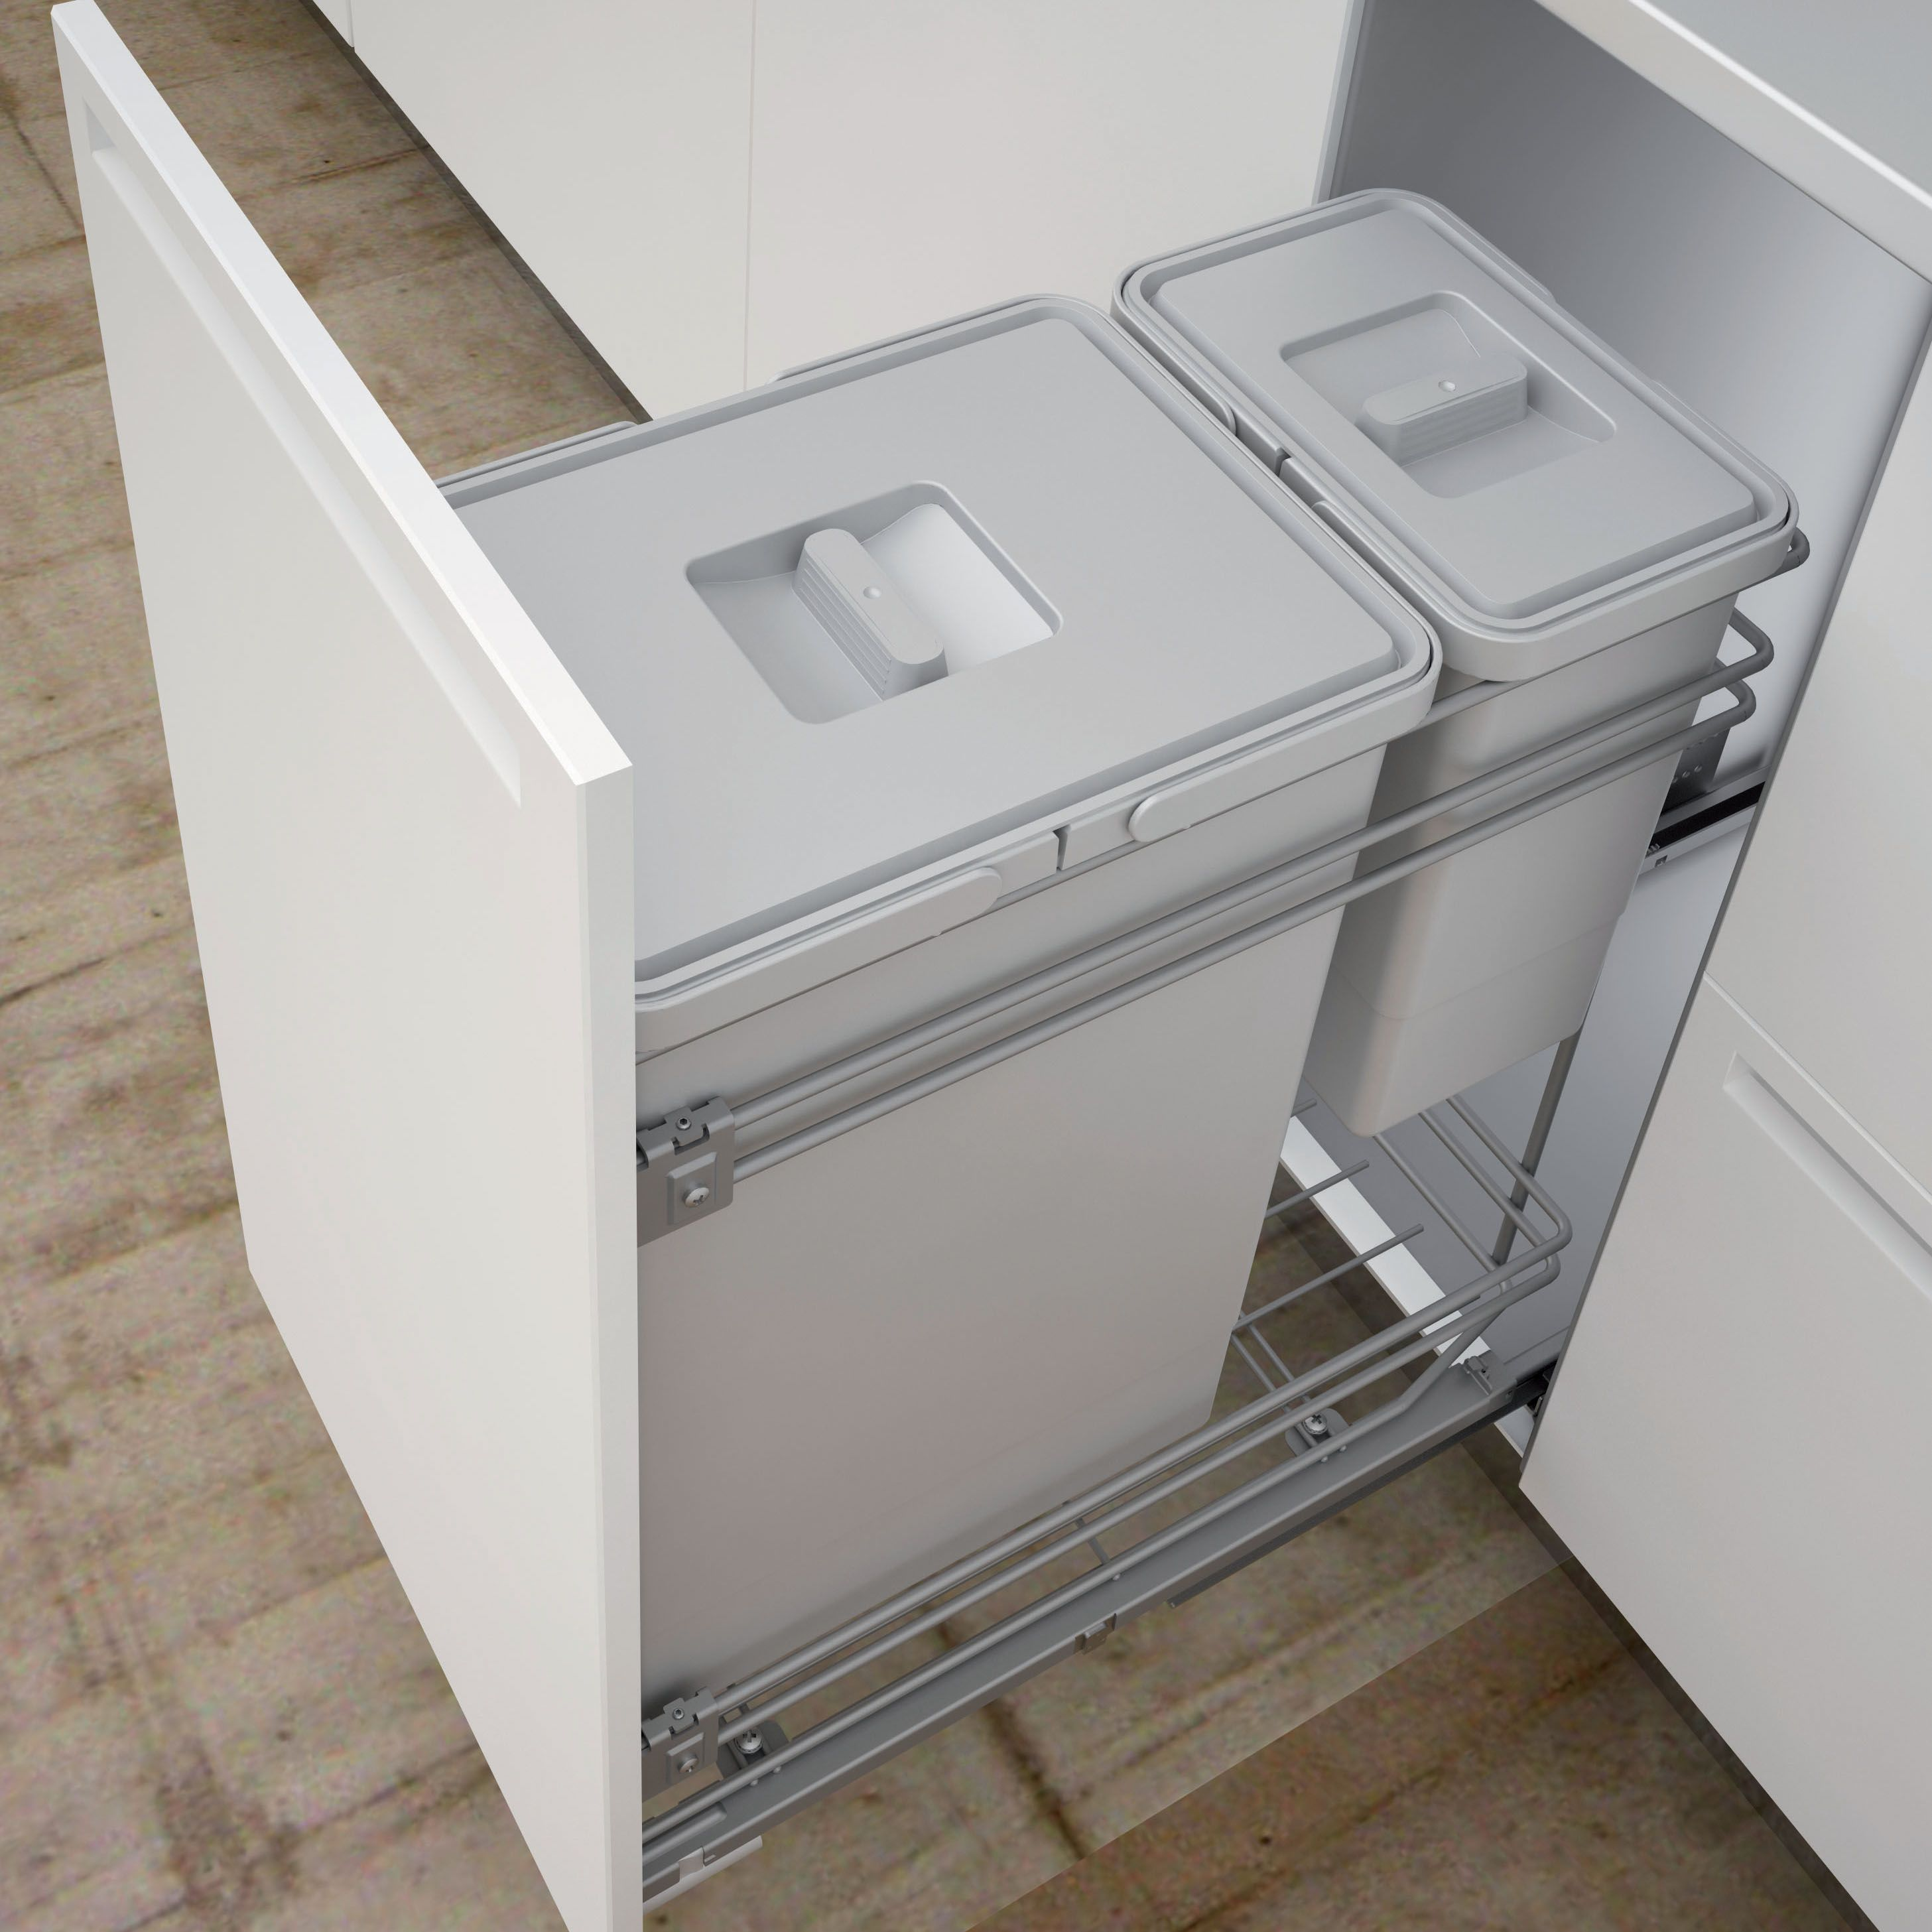 Best It Kitchens 300Mm Integrated Pull Out Kitchen Bins 30L 400 x 300